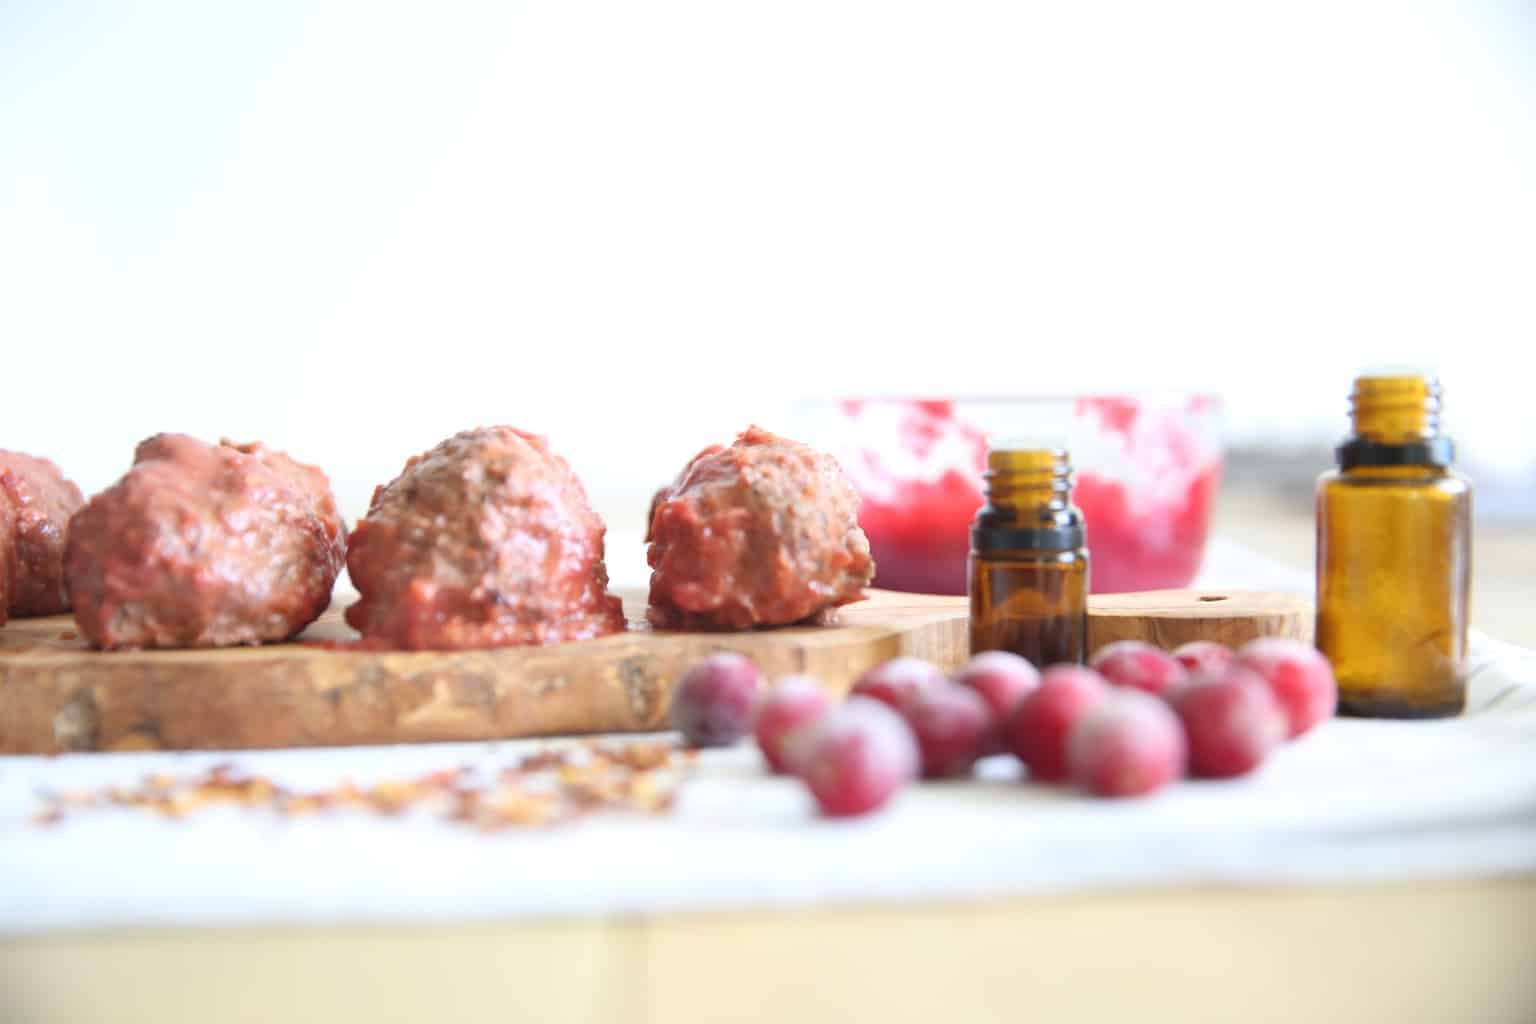 Learn how to make paleo homemade meatballs with a few simple gluten free ingredients.